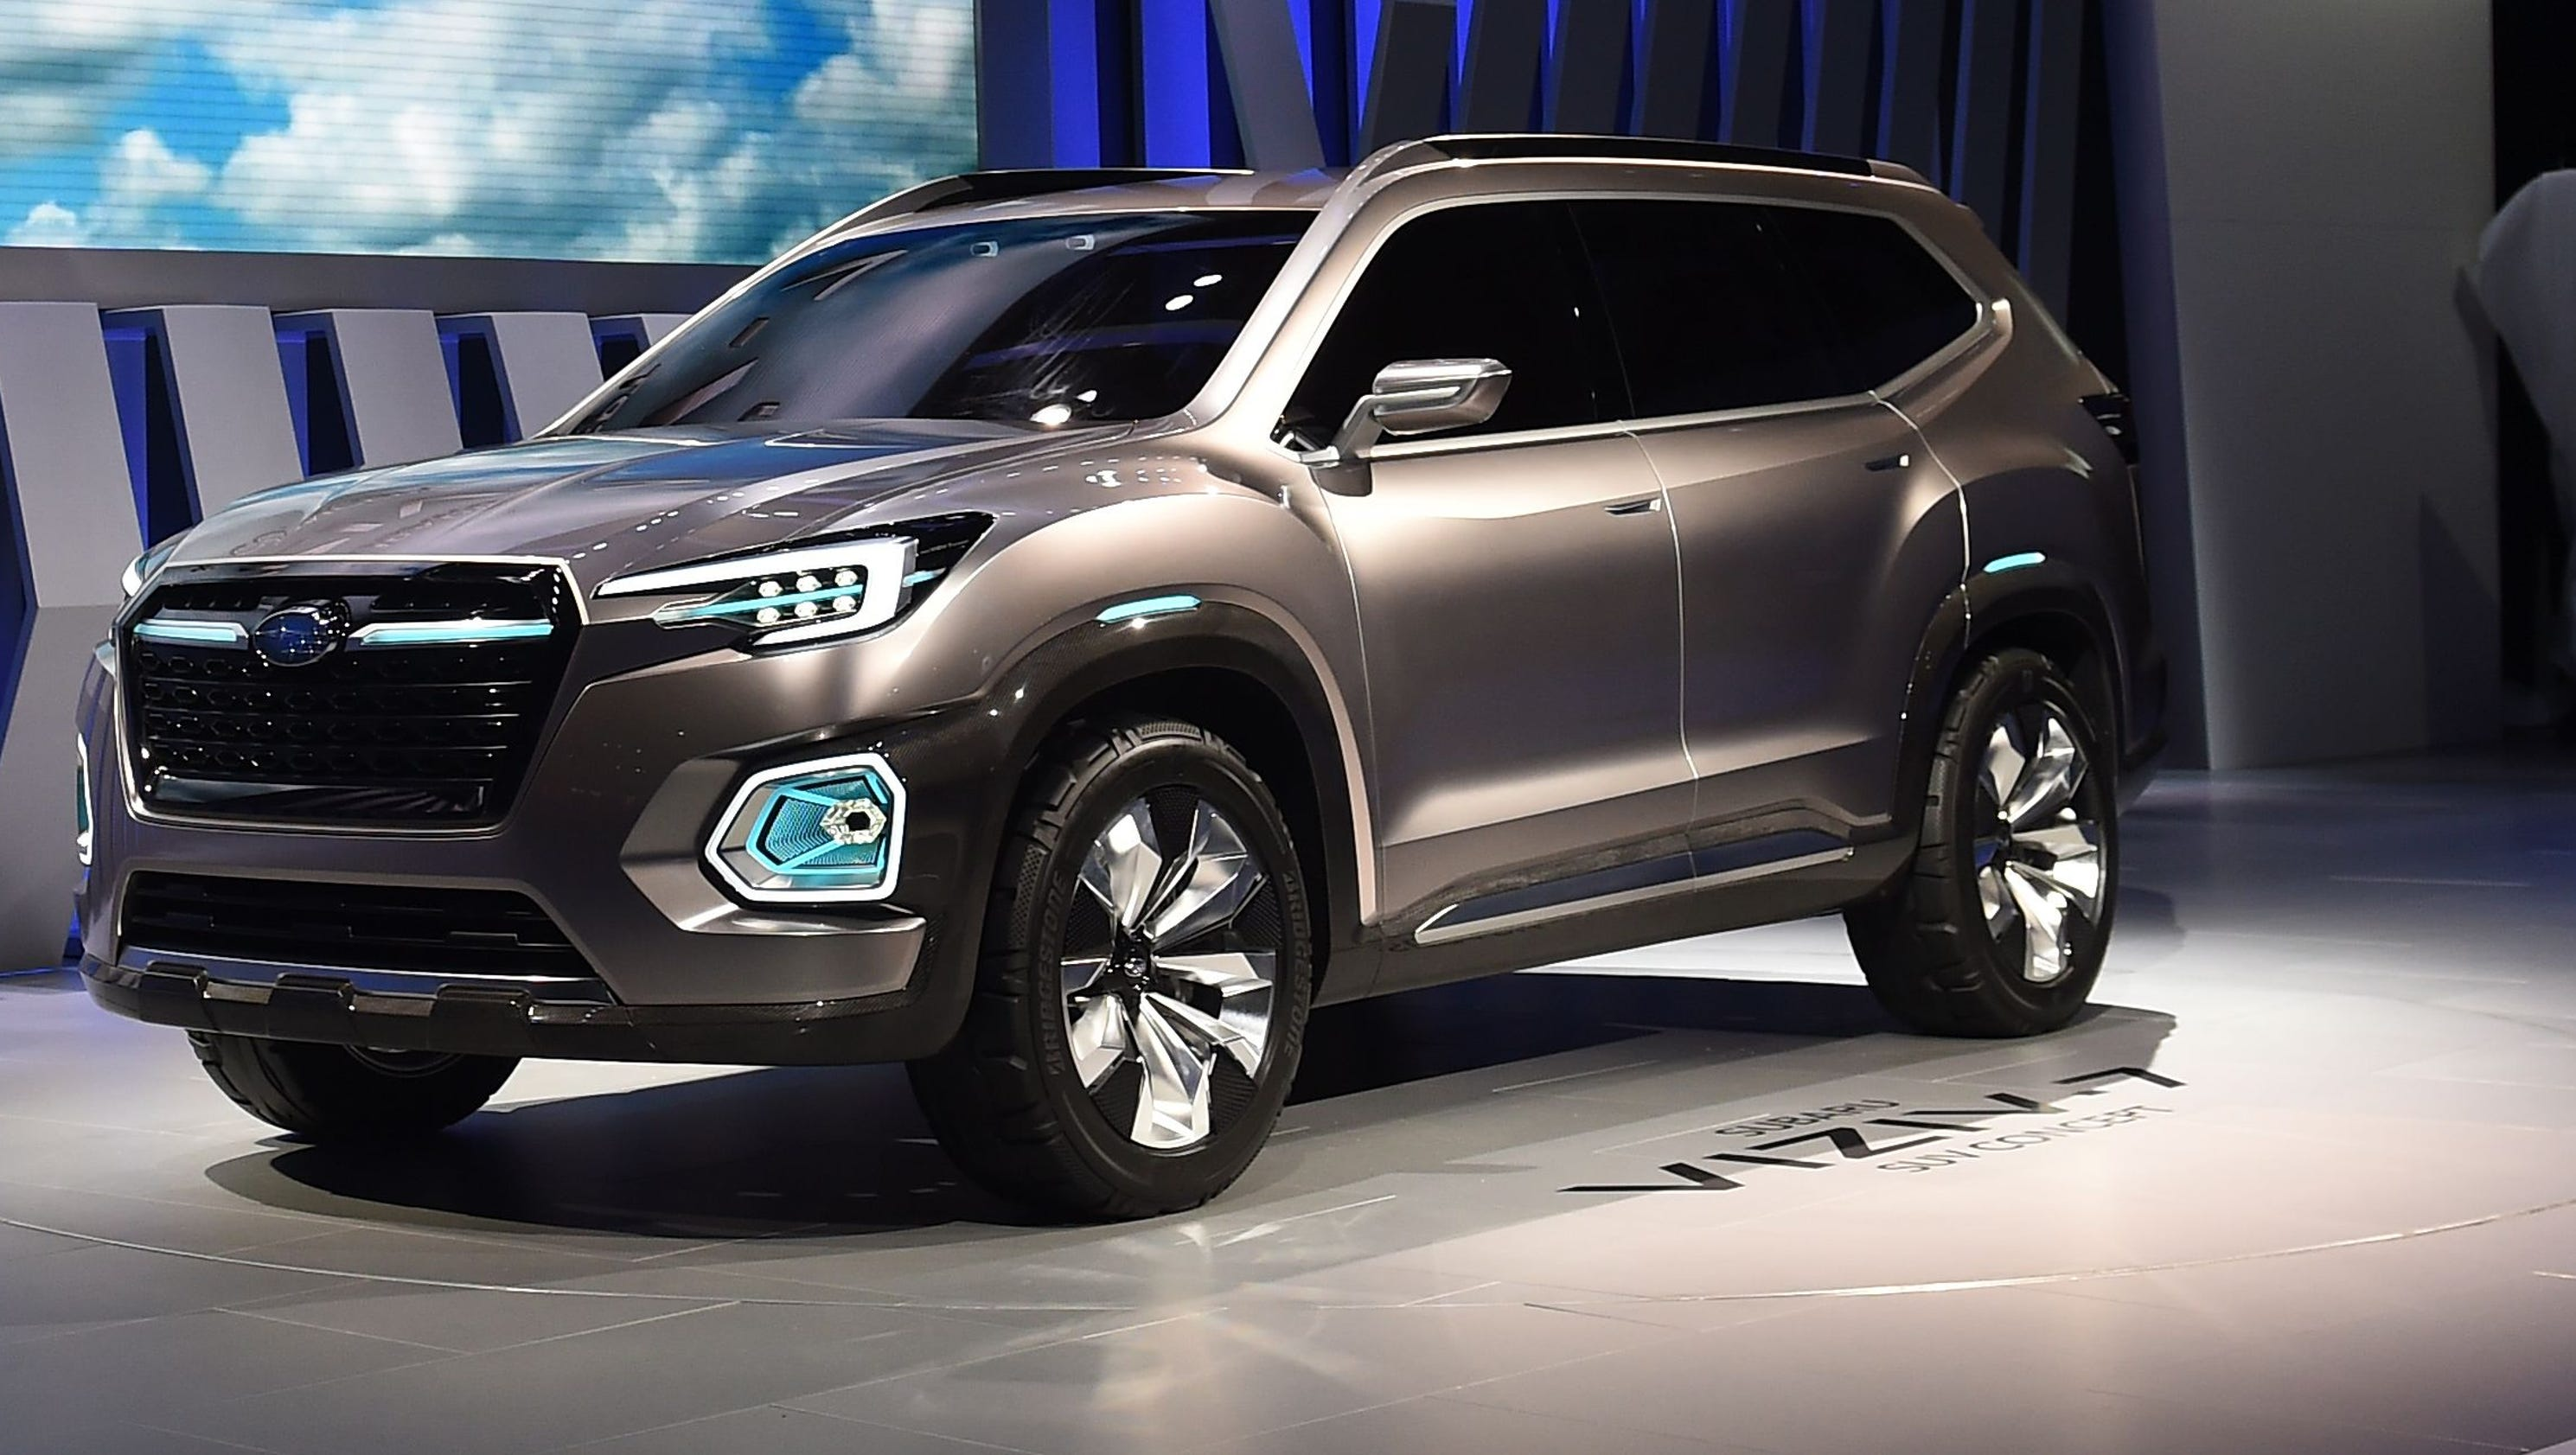 subaru unveils concept for its largest suv yet. Black Bedroom Furniture Sets. Home Design Ideas